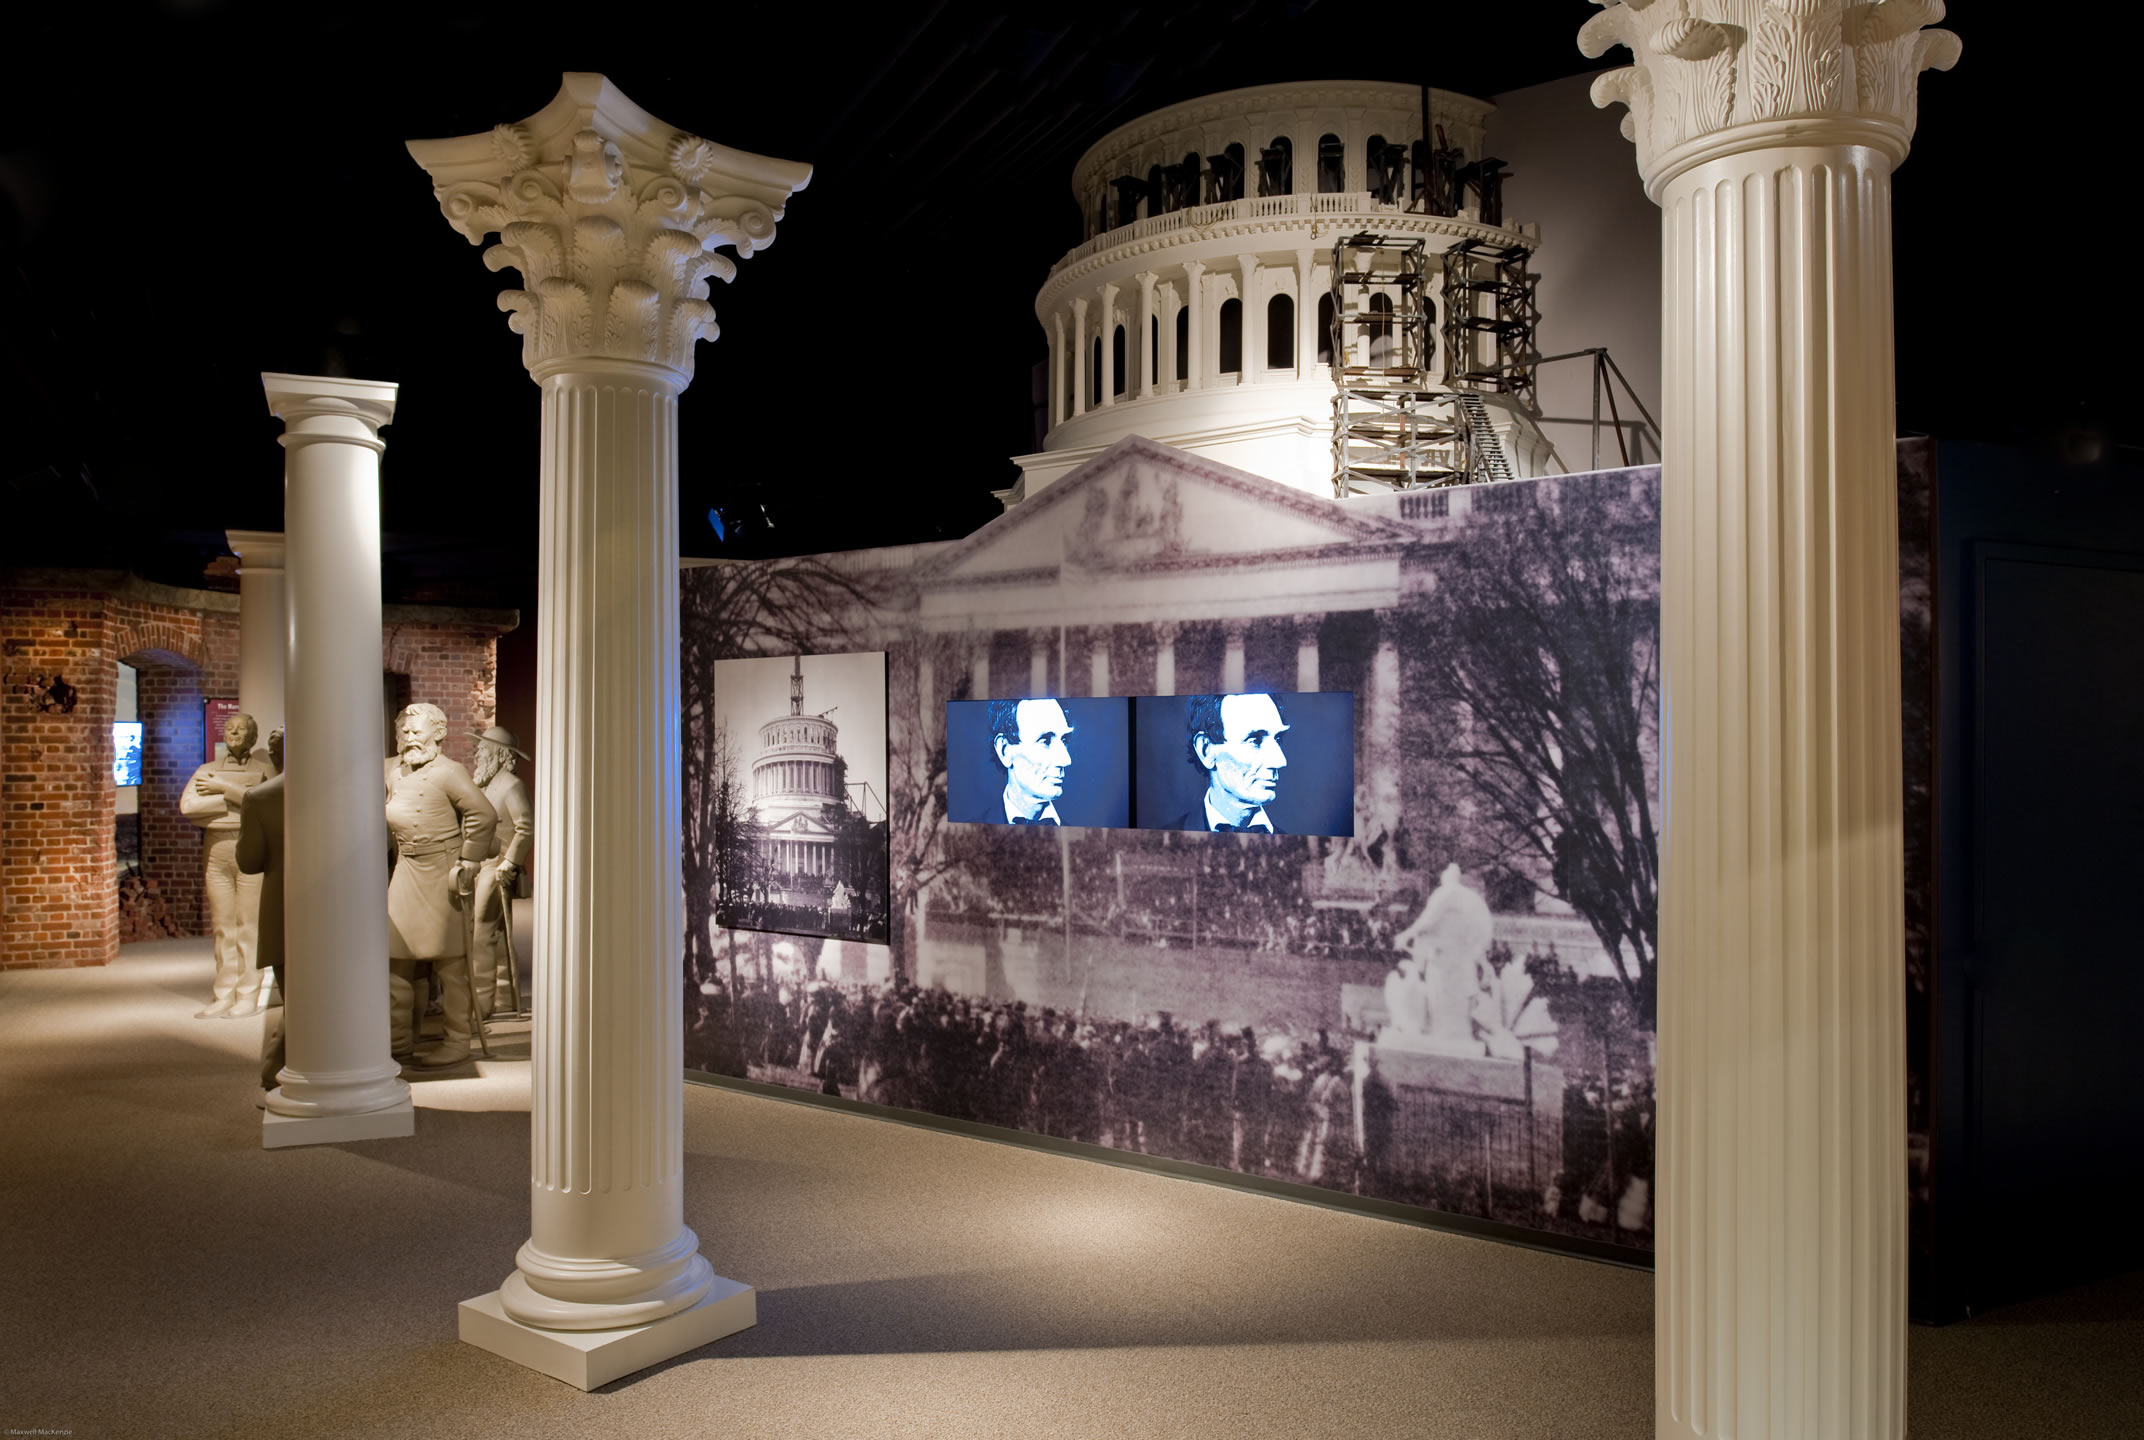 Museum exhibit of the 1860s unfinished United States Capitol dome. Lincoln's photograph is displayed on TV monitors below the Capitol dome in the exhibit.